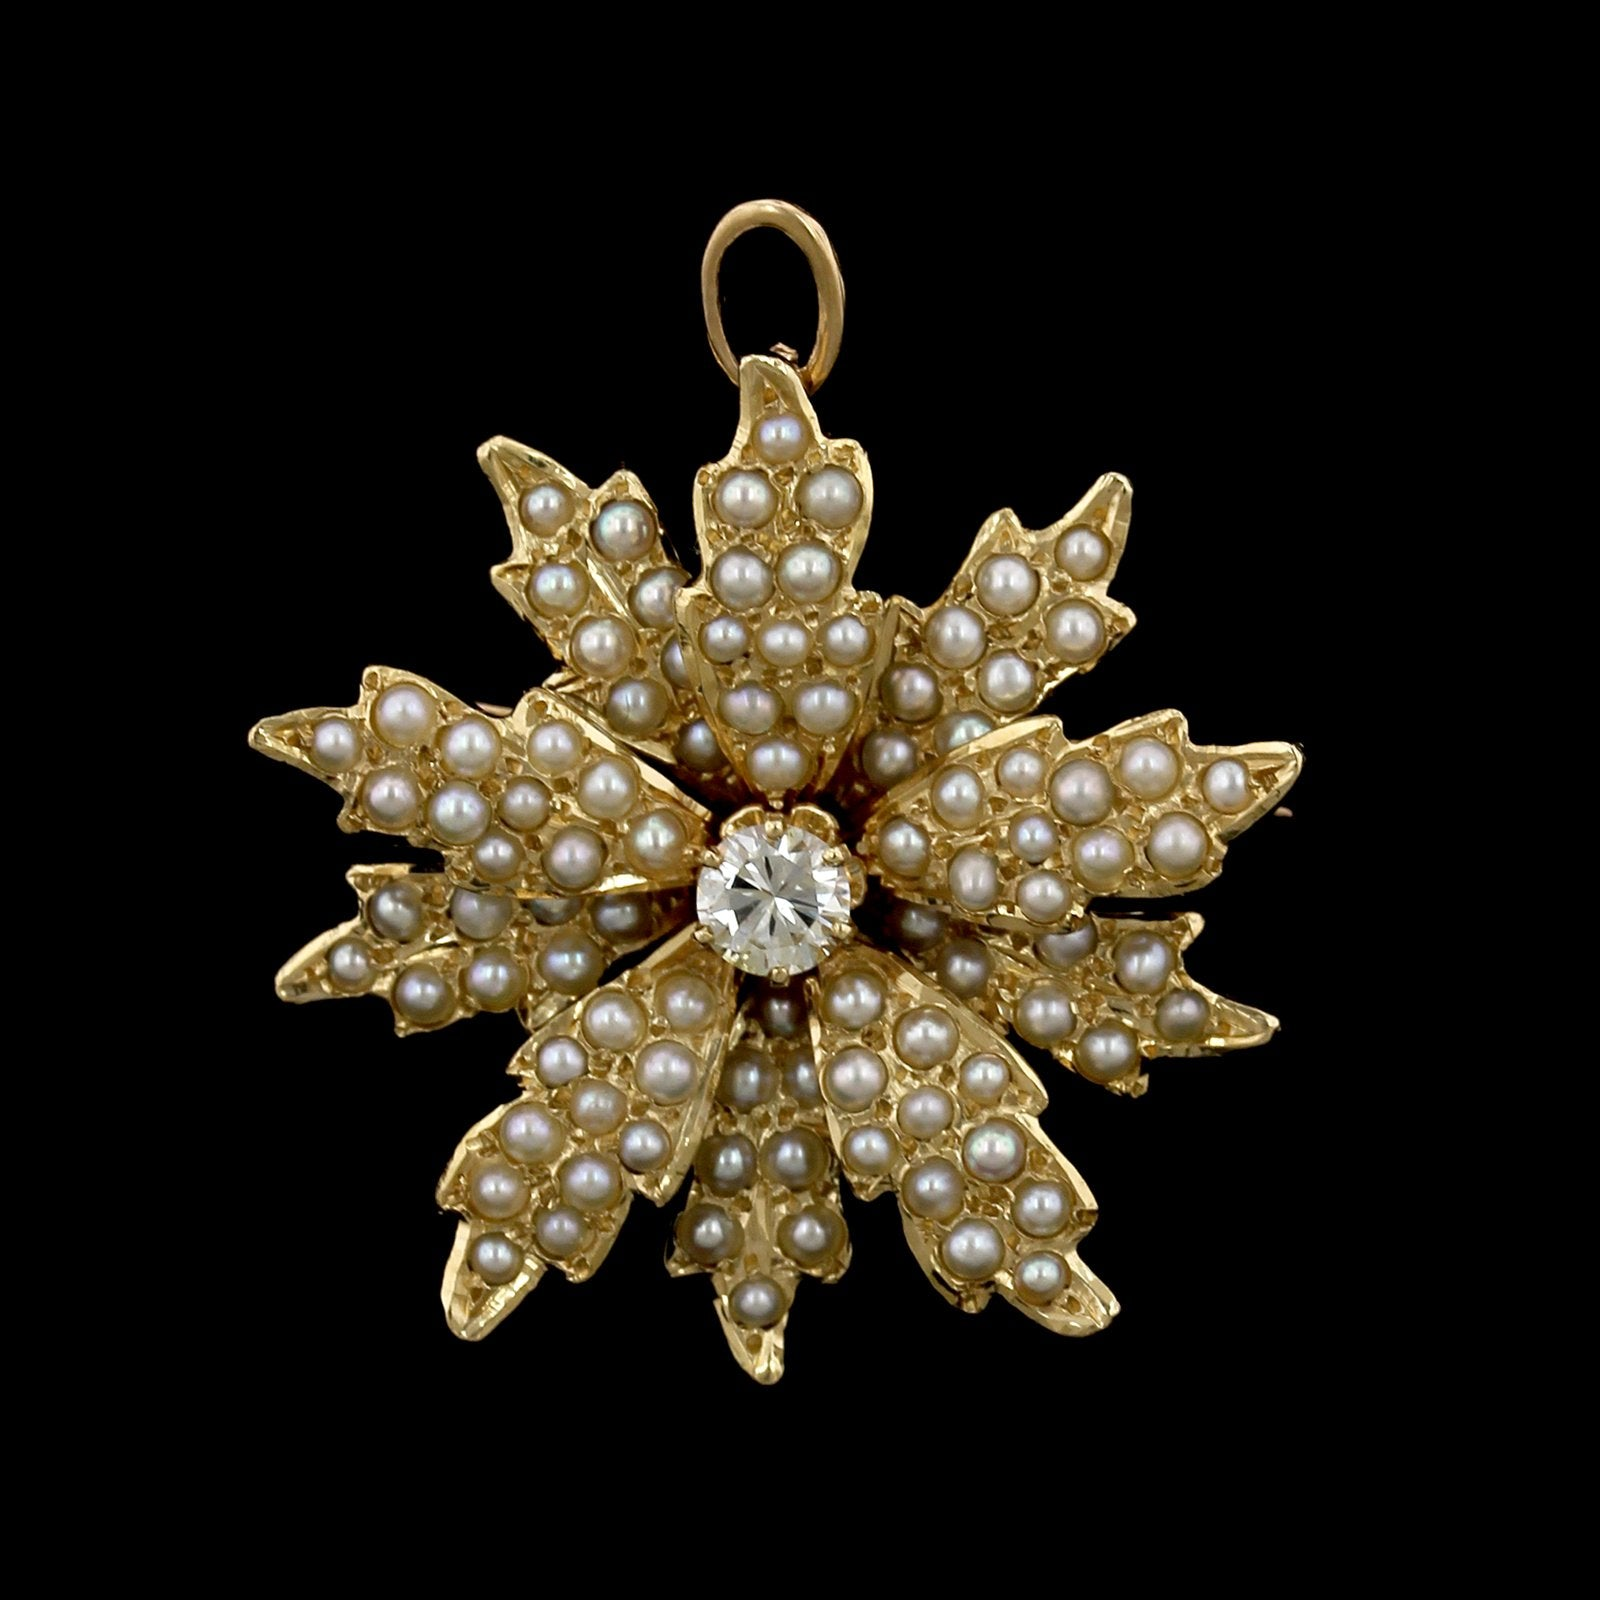 Vintage 14K Yellow Gold Estate Cultured Seed Pearl and Diamond Flower Pin/Pendant